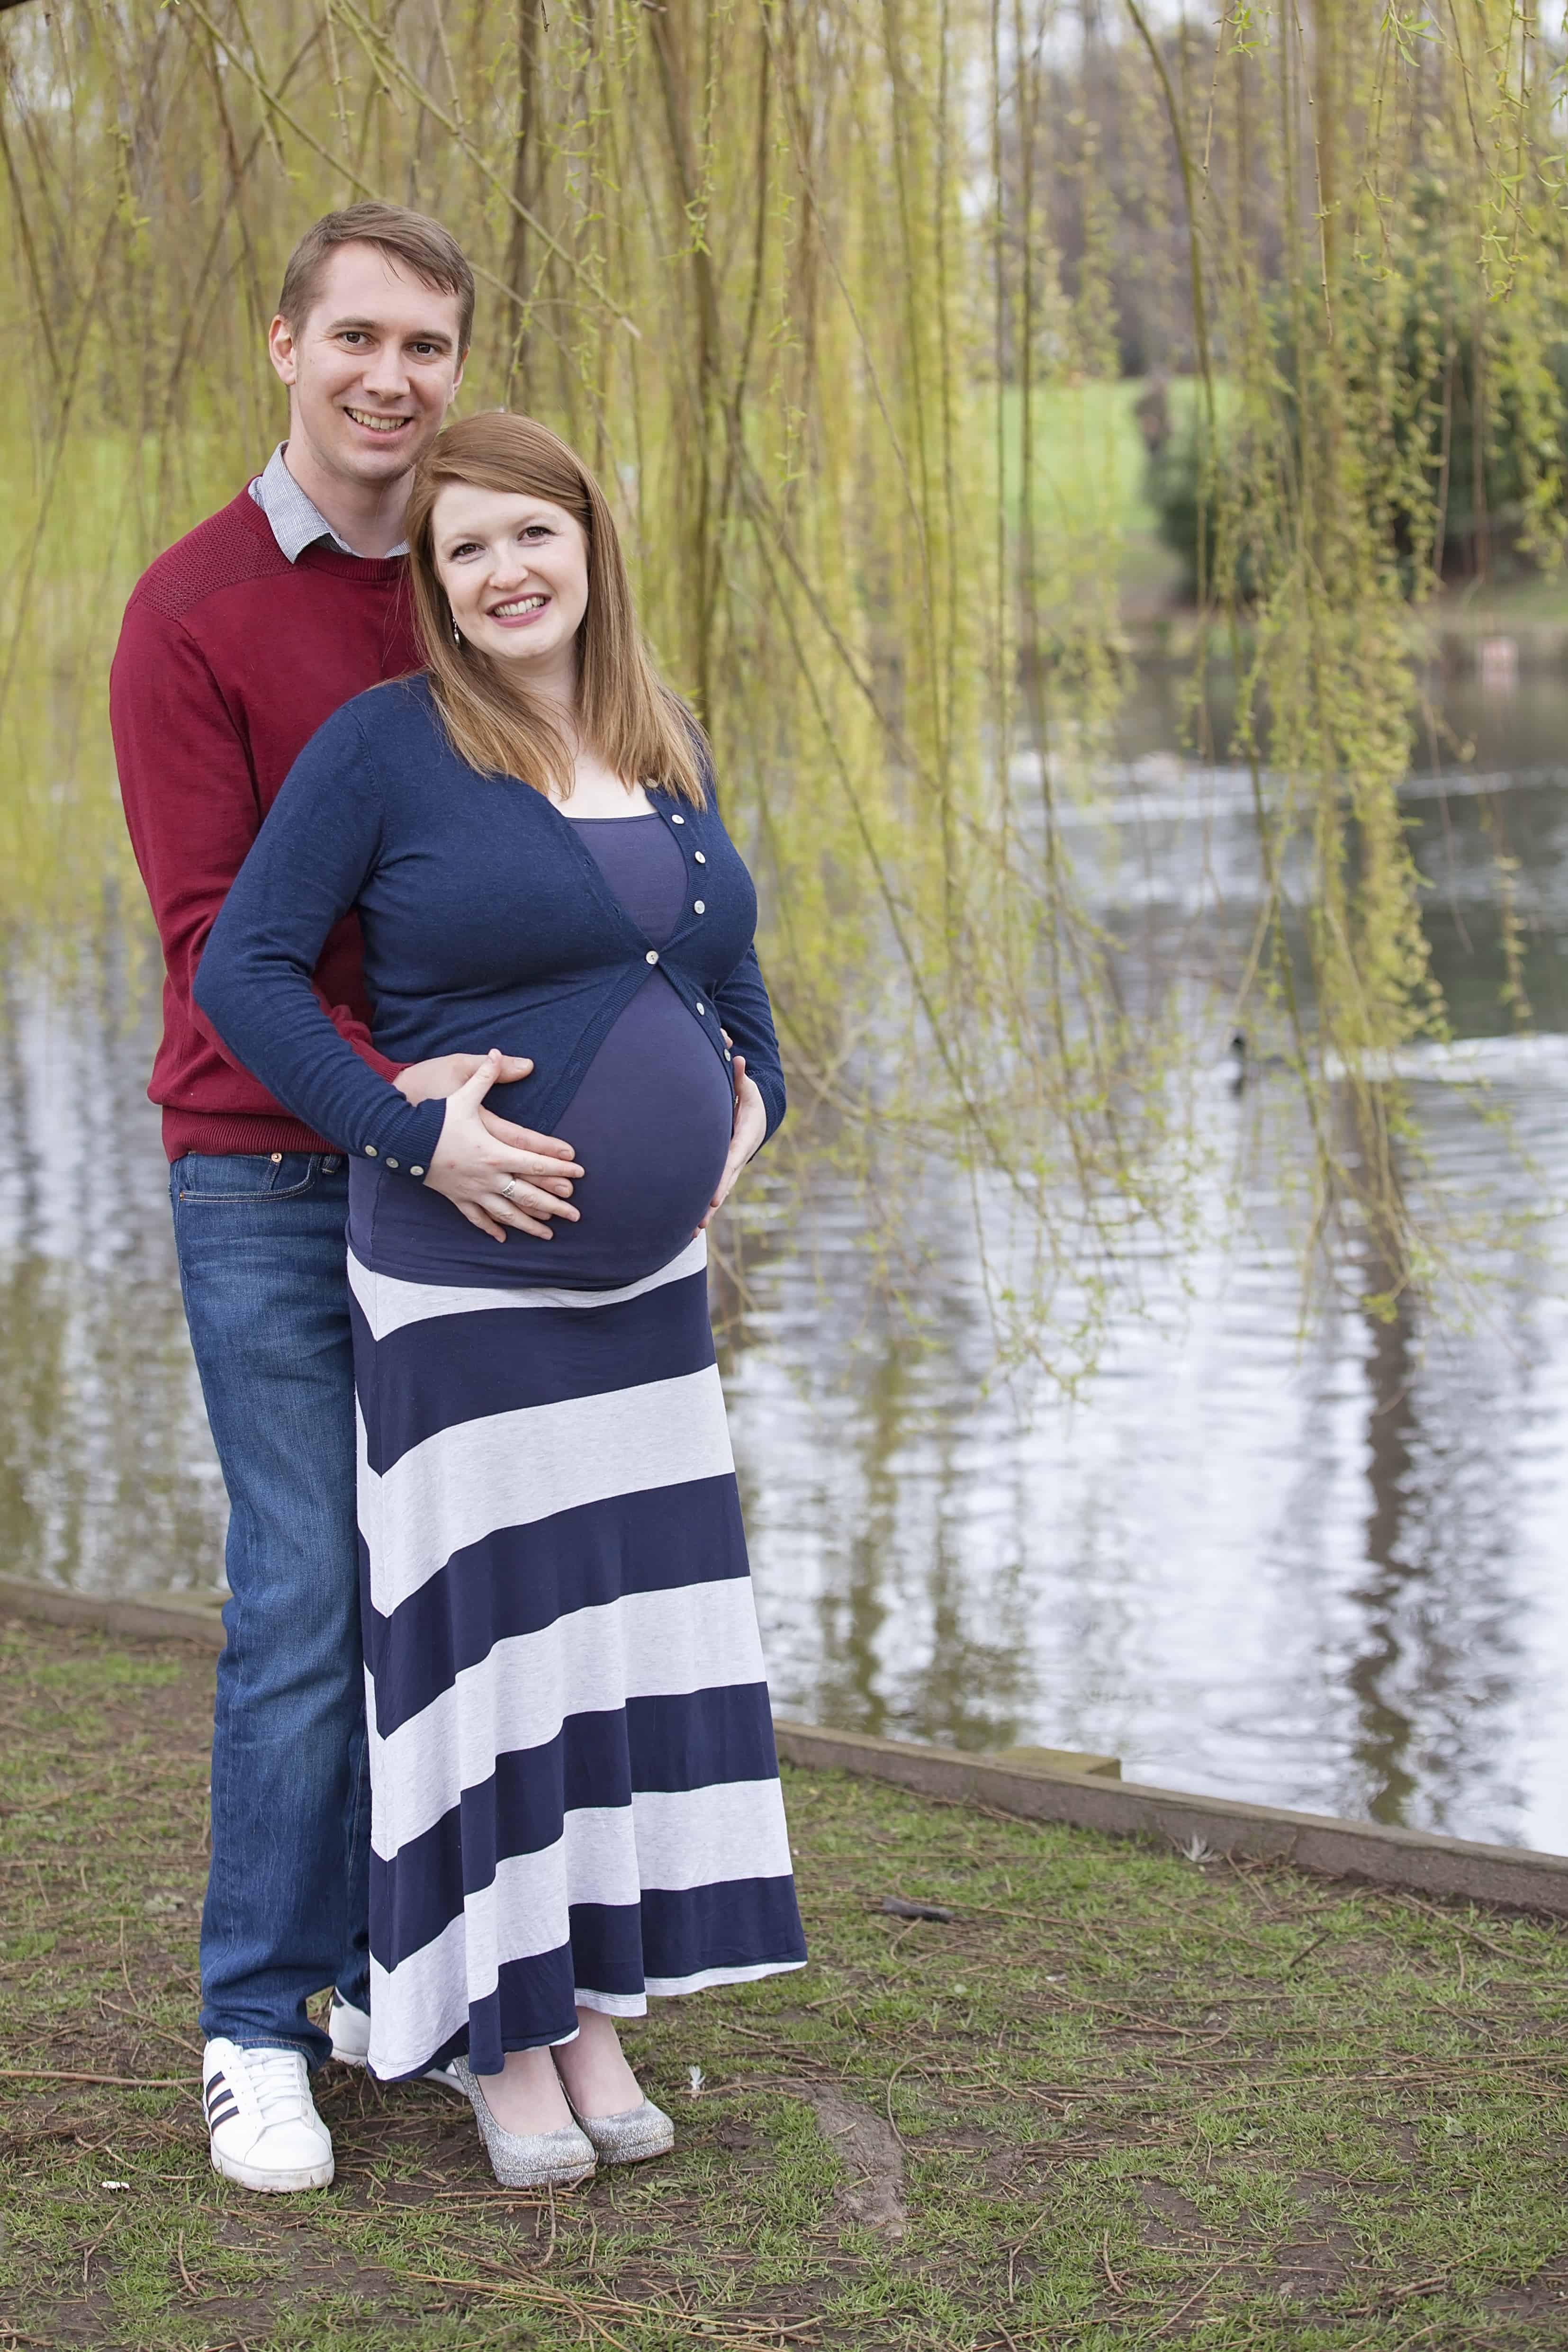 nautical Maternity Photoshoot Outfits